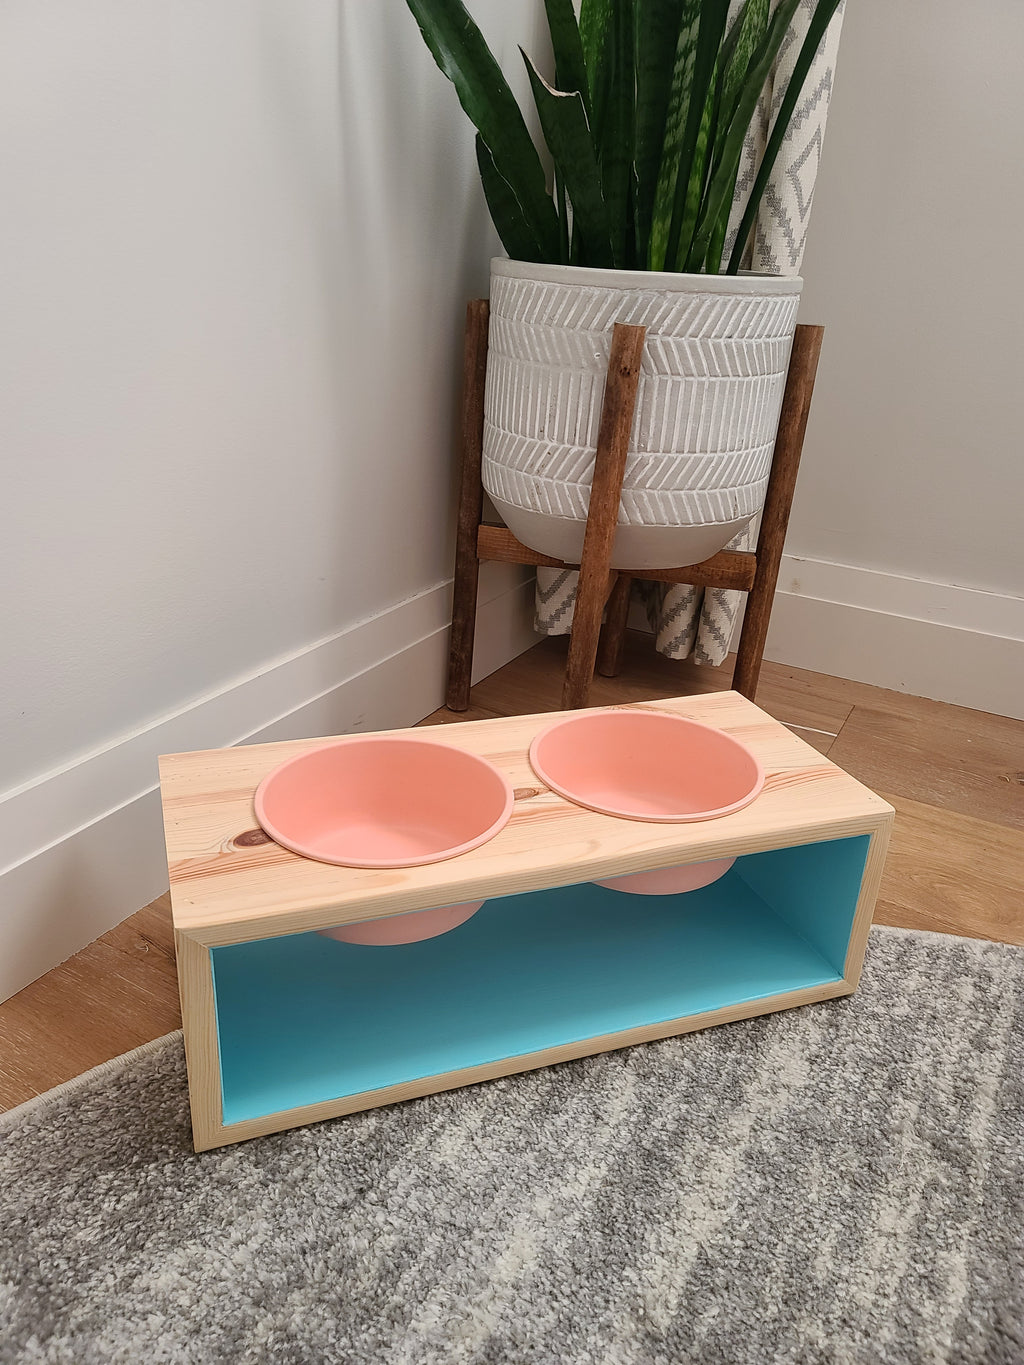 Elevated pet dishes